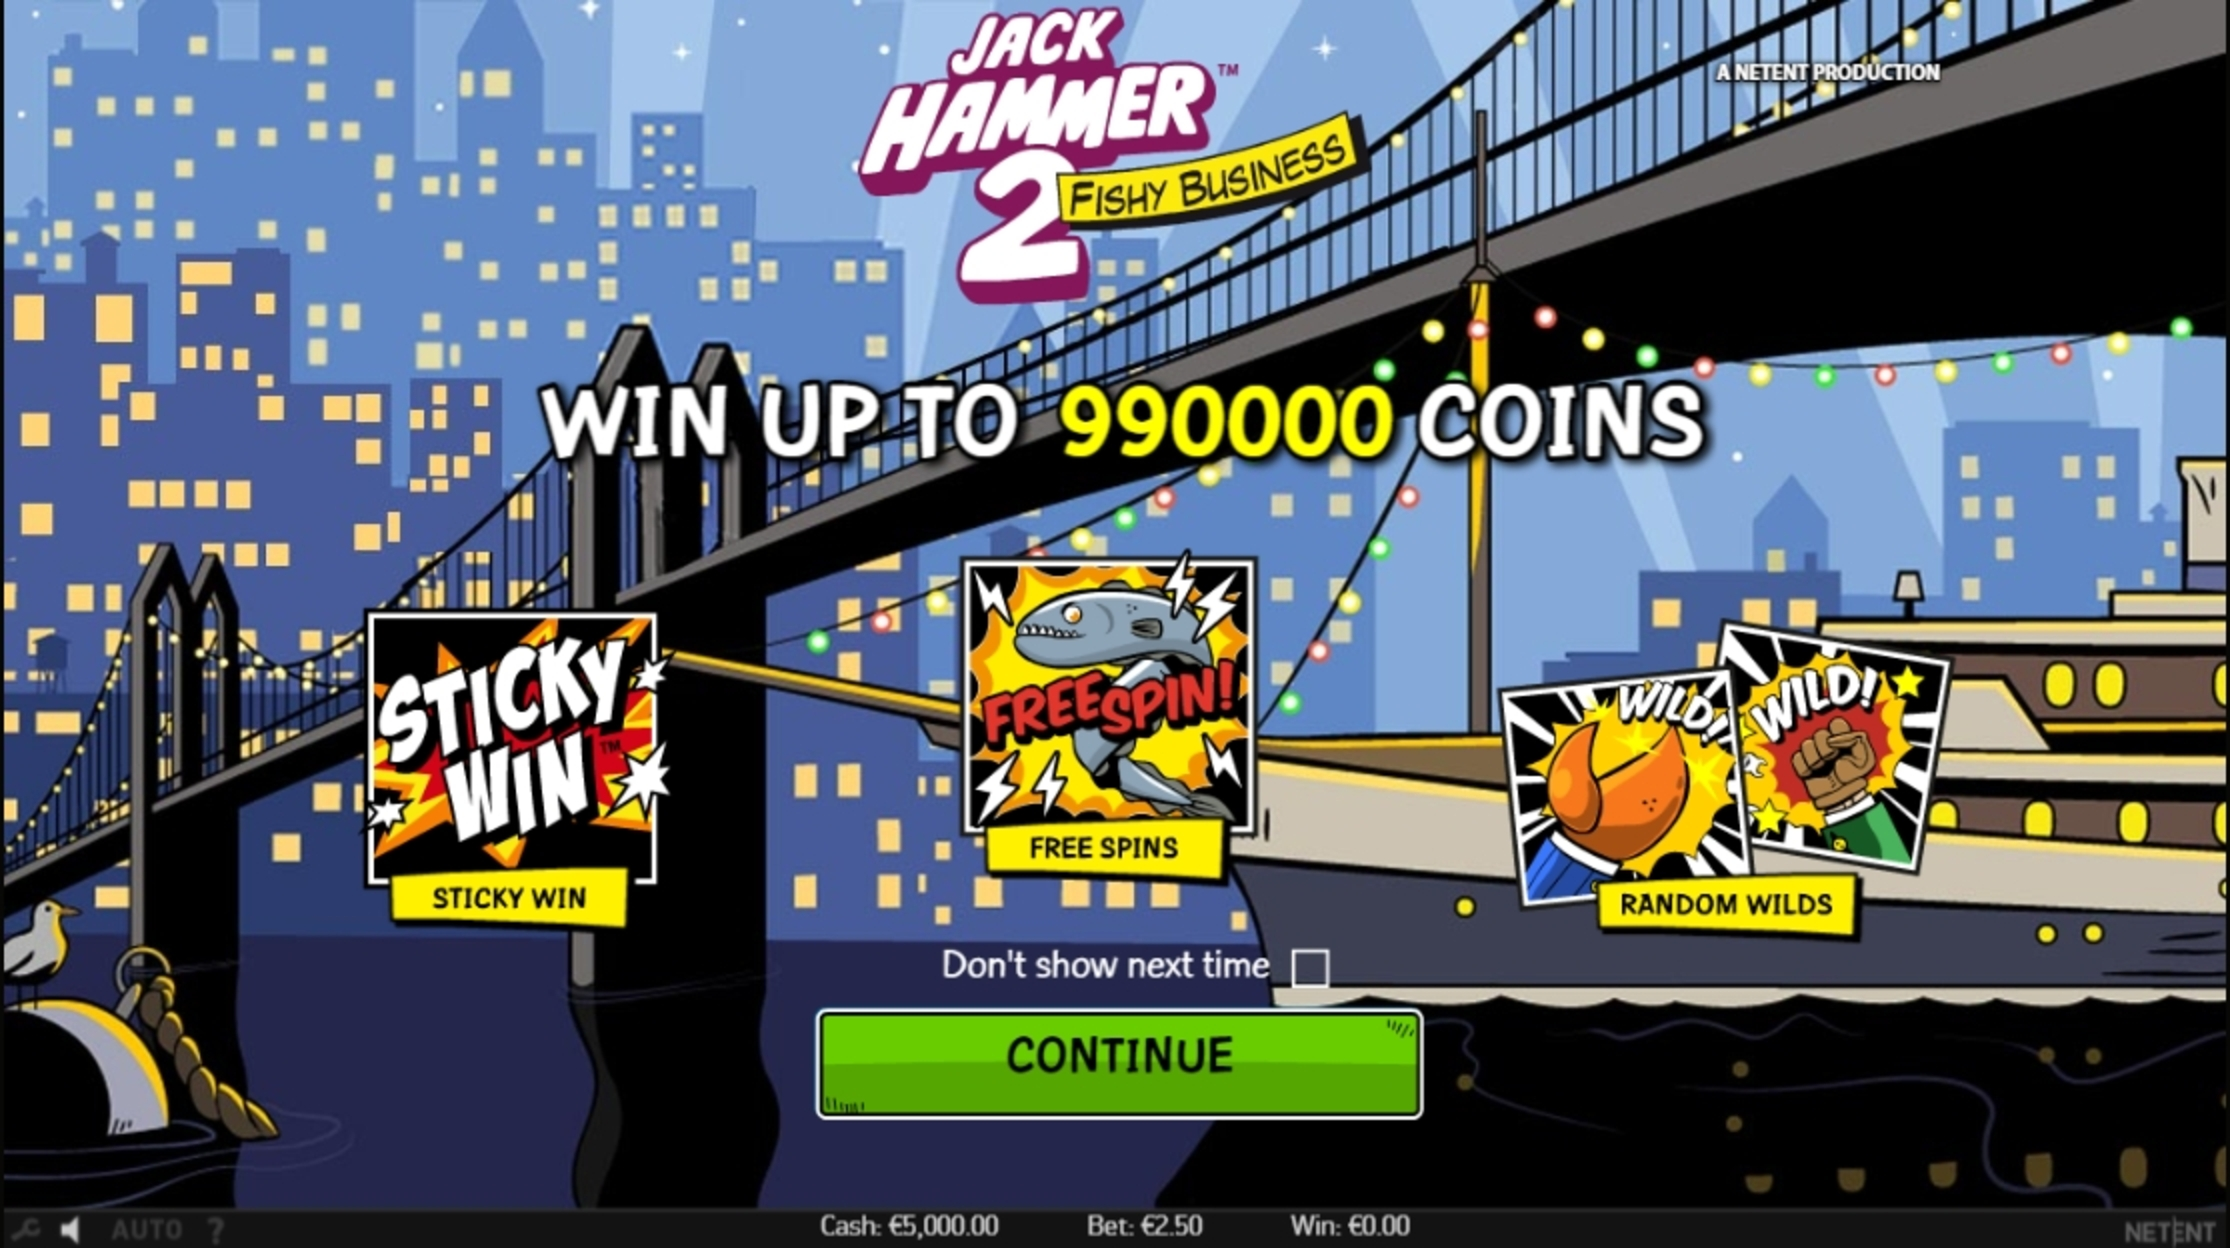 Play Jack Hammer 2 Free Casino Slot Game by NetEnt